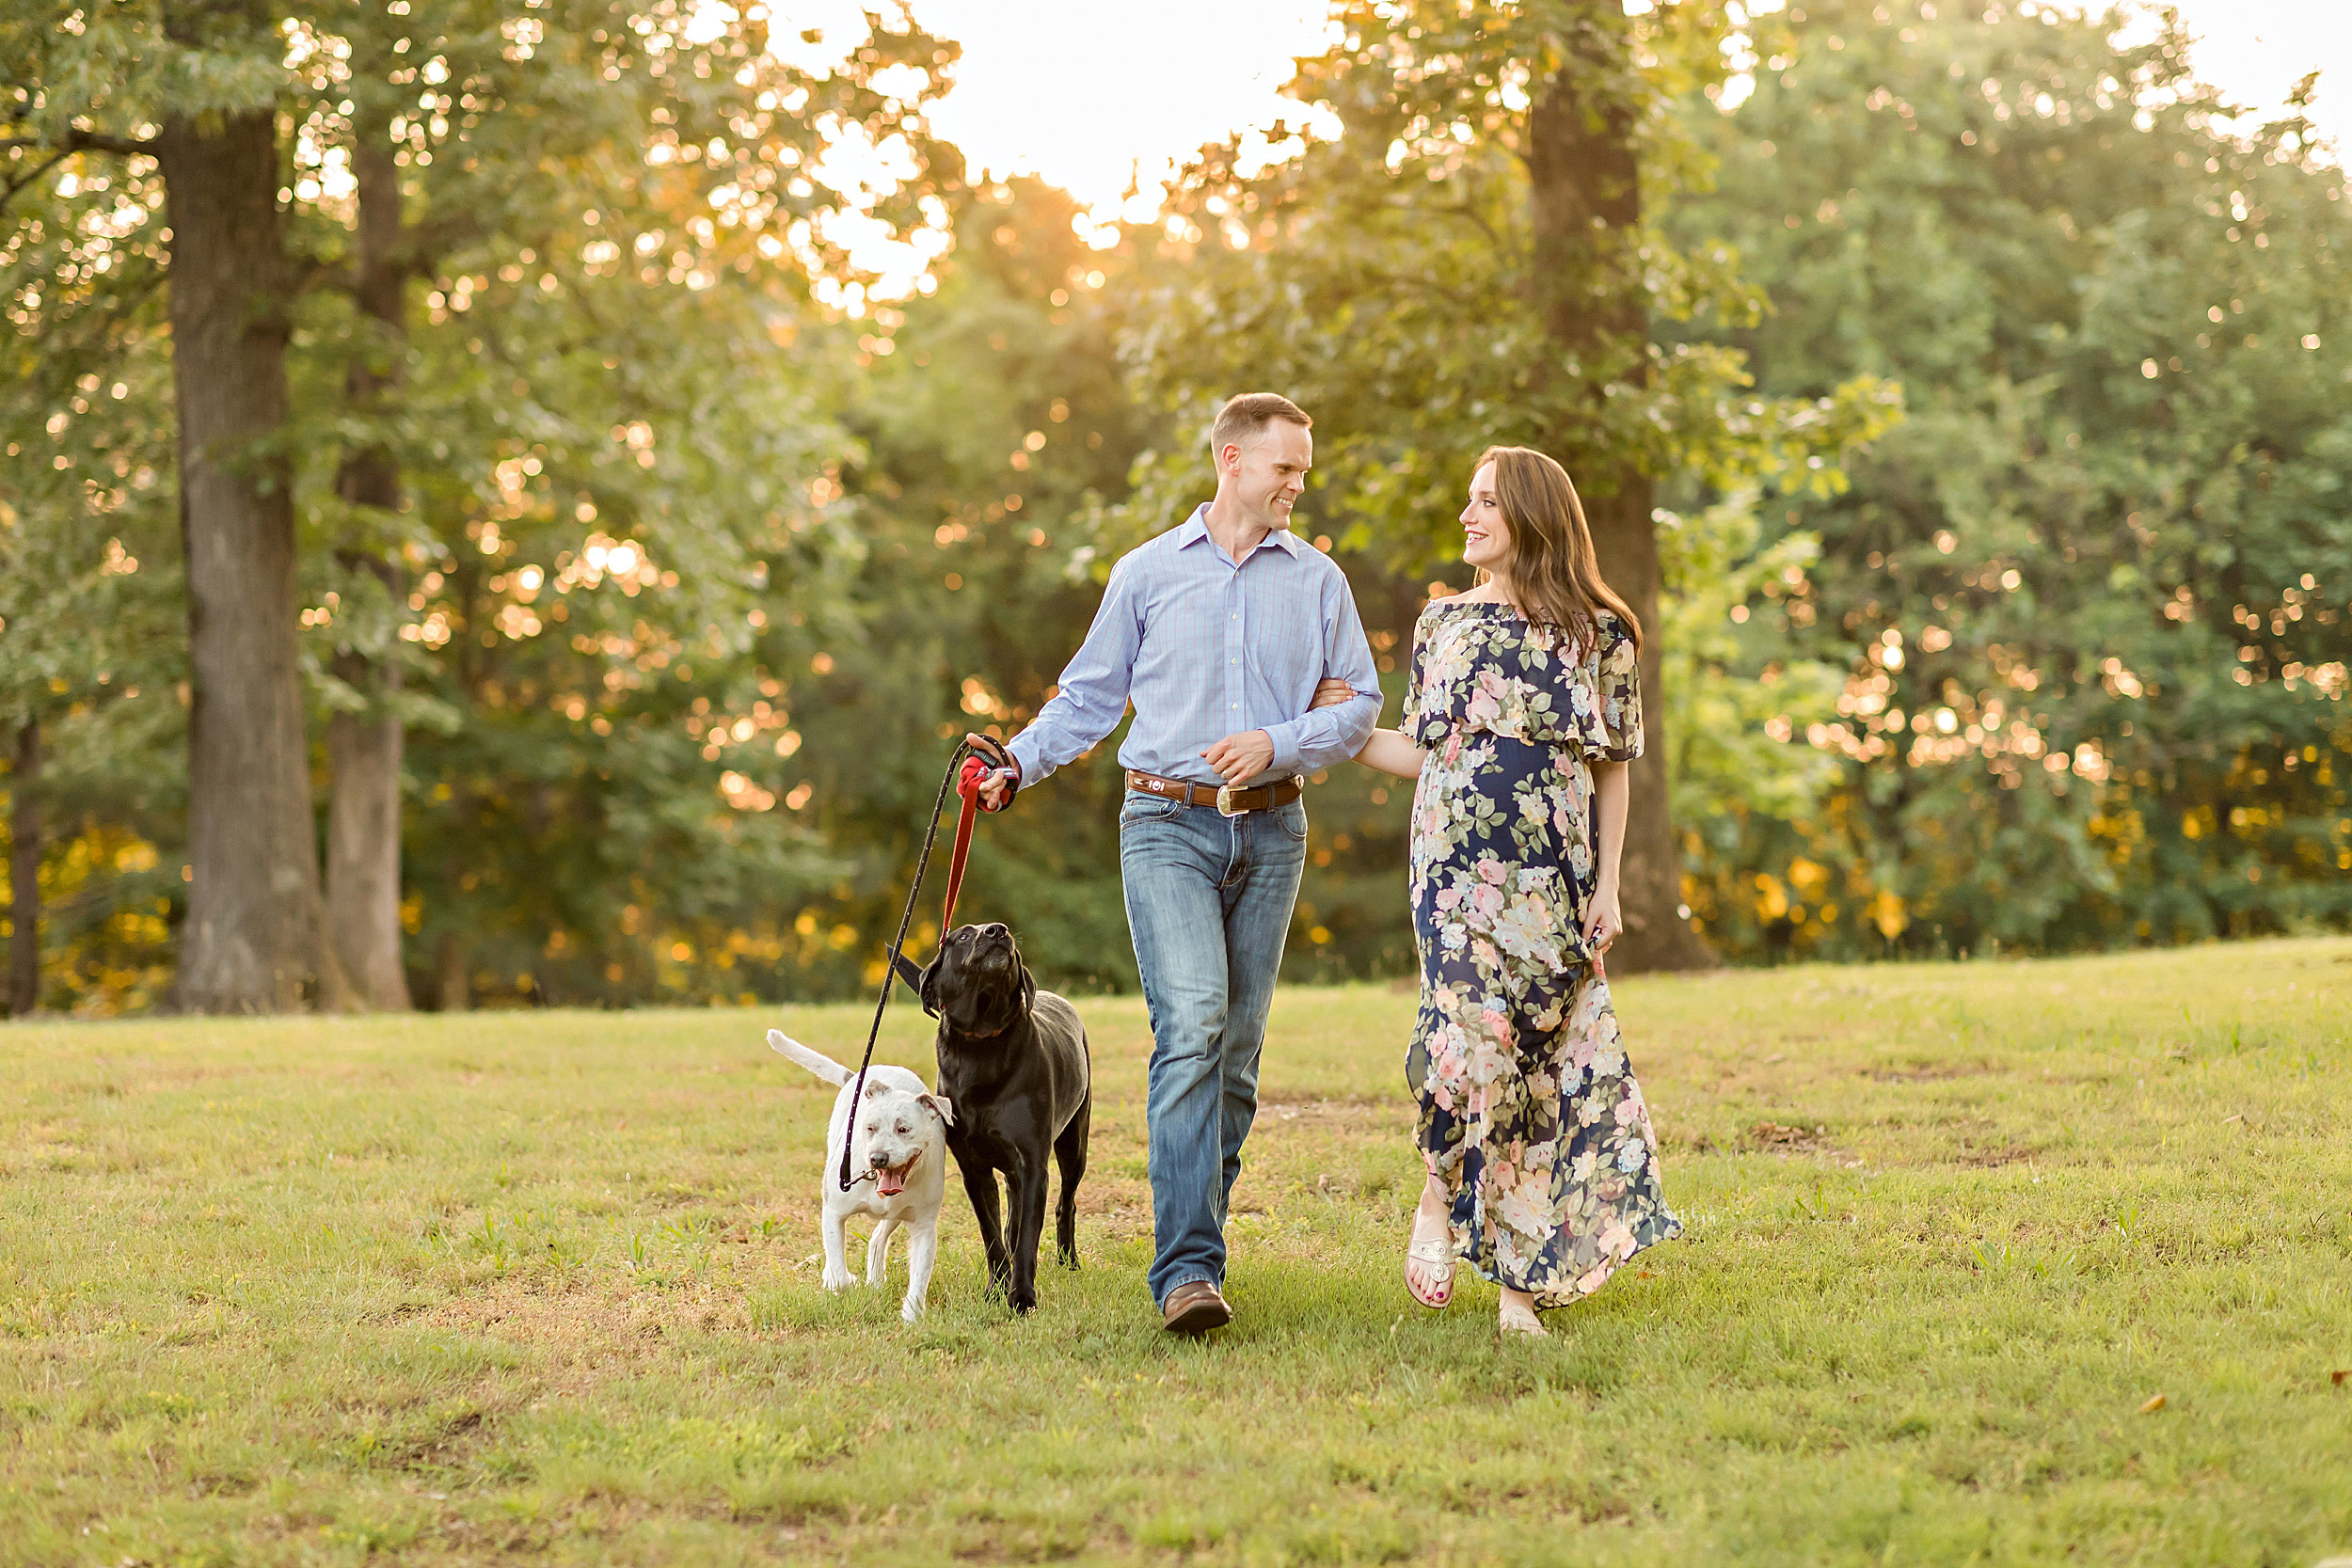 Maternity photo of an expectant husband and wife and their two dogs walking in a park in Atlanta.  The wife is holding the arm of her husband as she walks to the left of her husband.  The husband has the leashes of the black lab and the golden lab pups in his right arm.  The couple and their dogs are walking together in the park as the husband and wife turn their heads to look at one another.